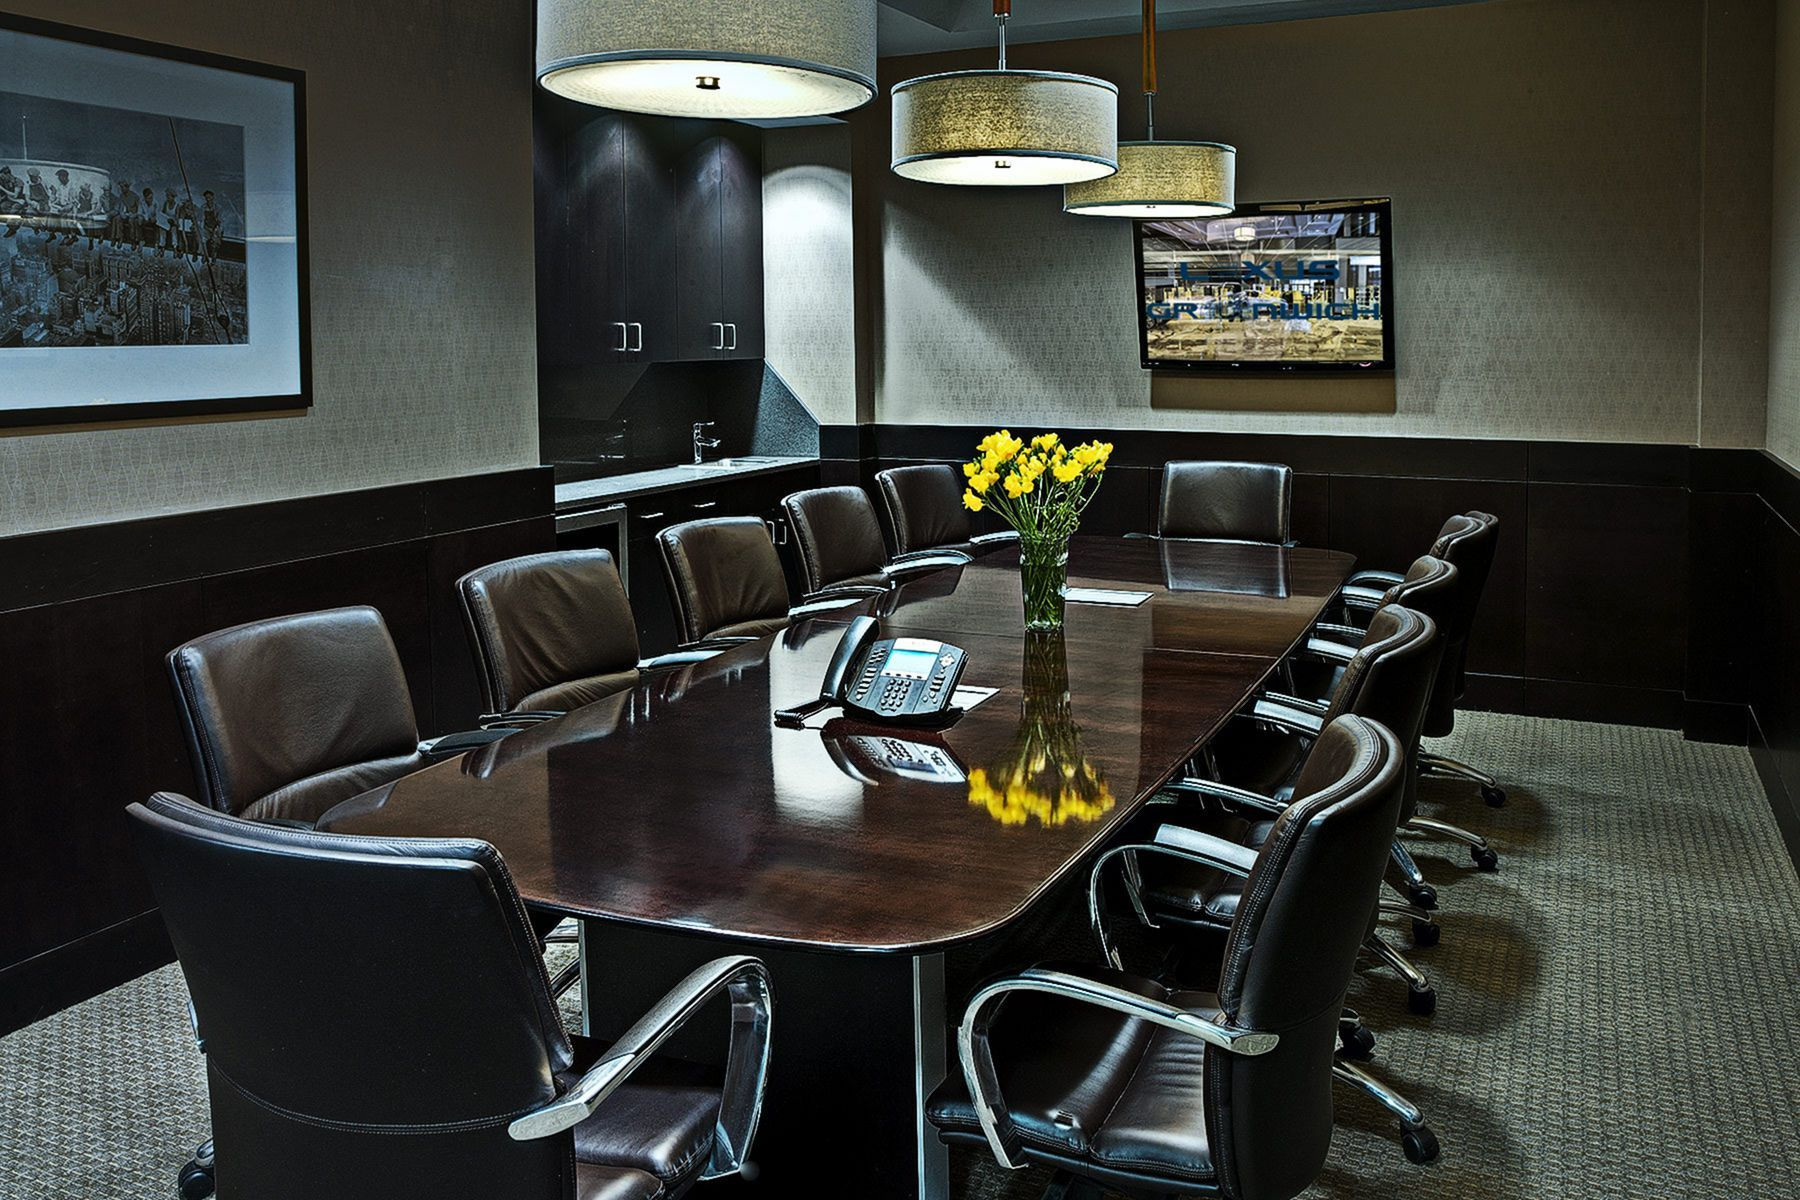 Commercial Residential Cleaning Service Los Angeles Ca Outstanding 15 Comfortable Modern Meeting Room Decorating Ideas